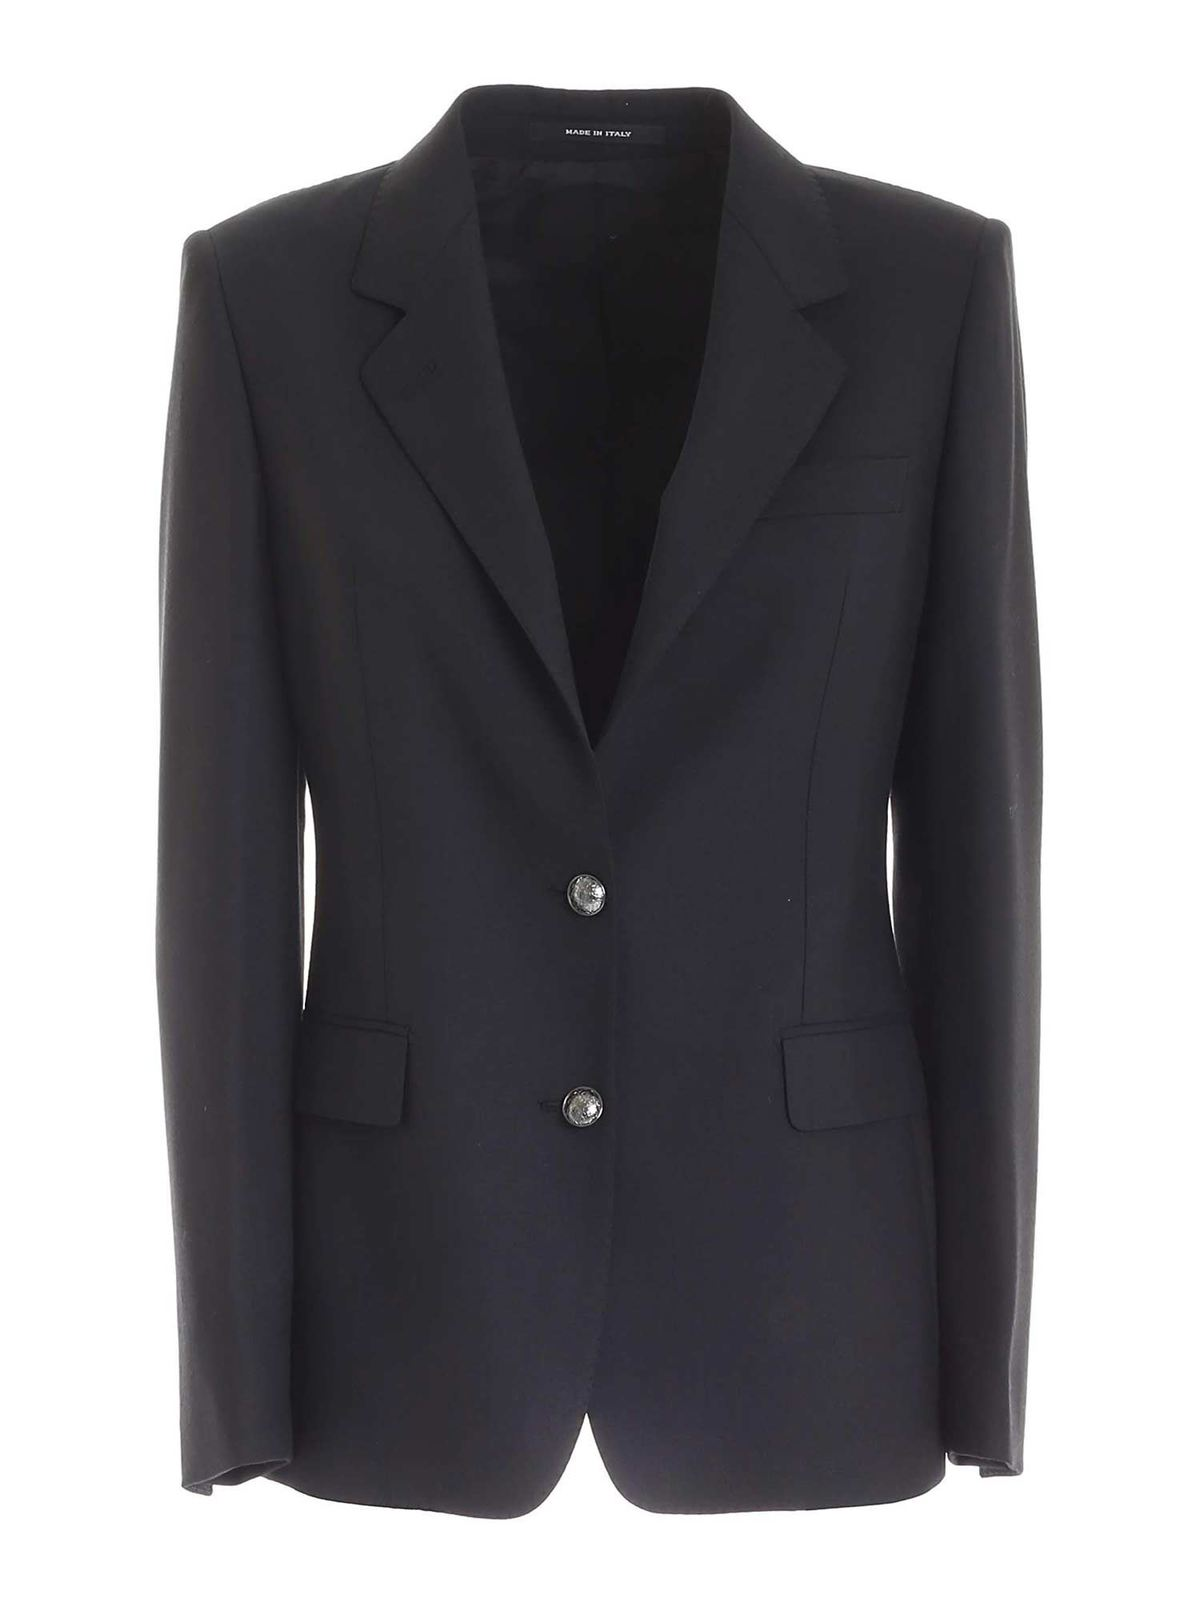 Tagliatore SINGLE-BREASTED JACKET IN BLACK